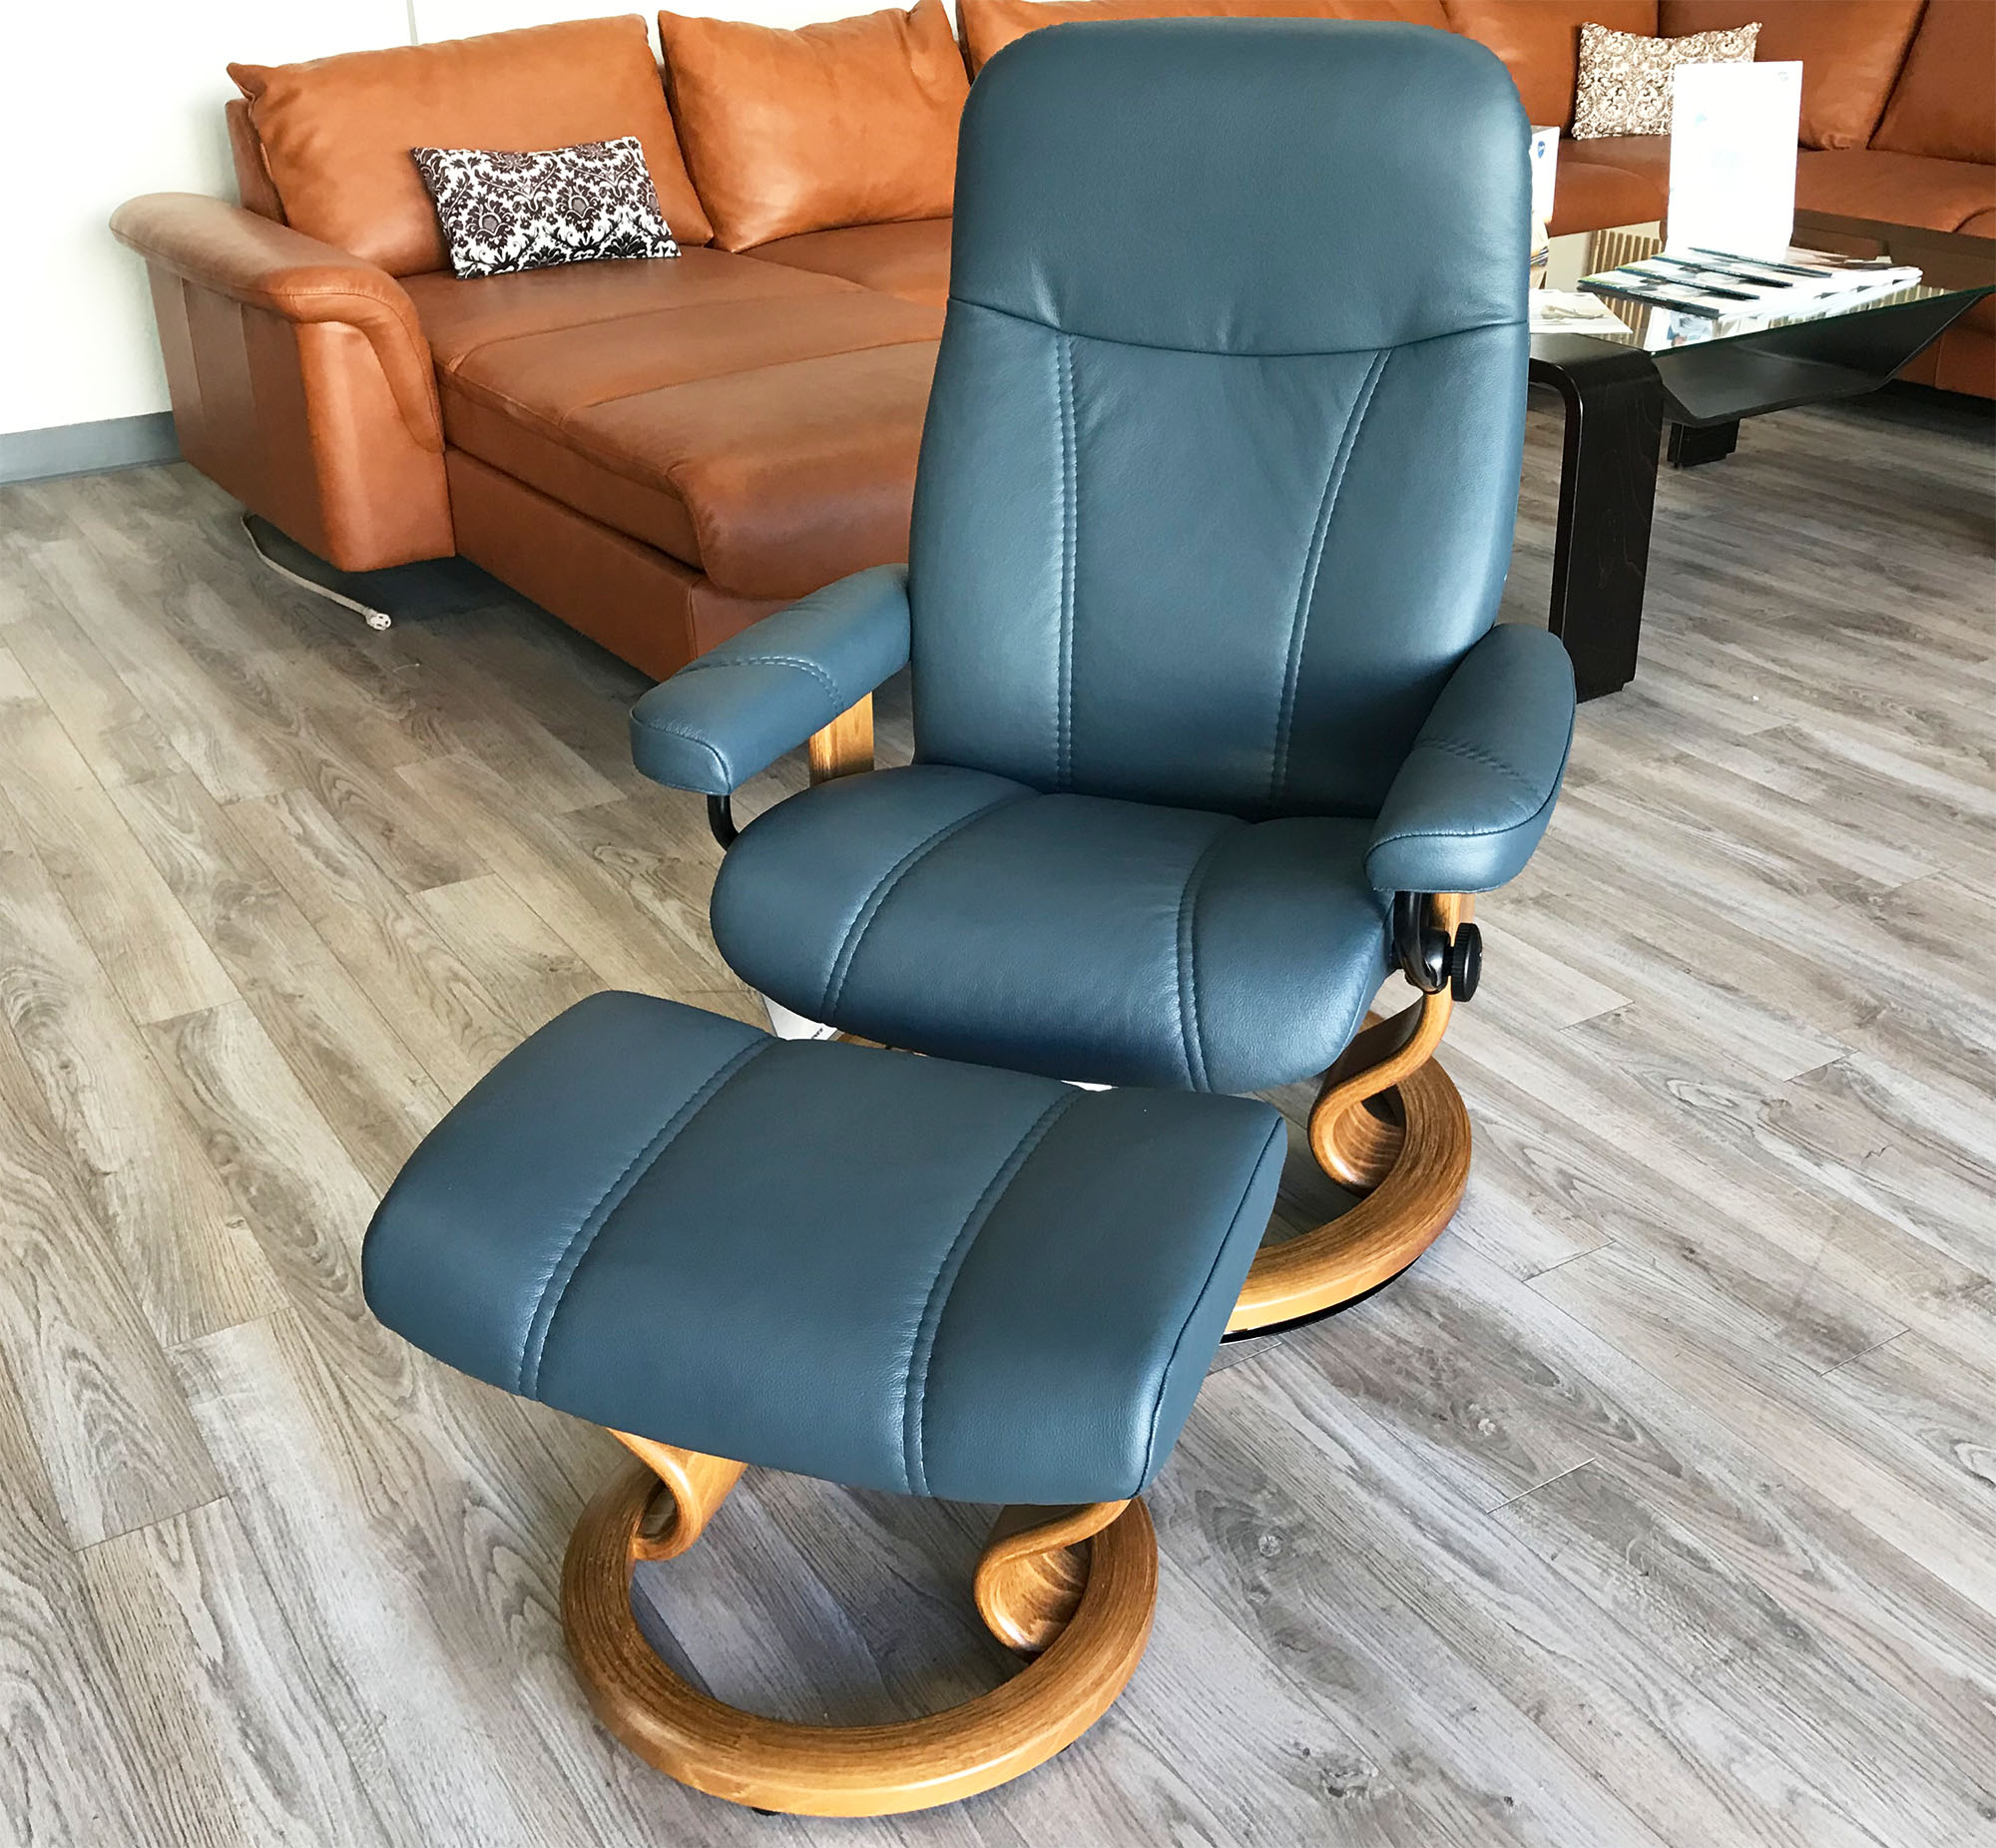 Stressless Fauteuils 2017 Ftlj Stressless Perfect Fabulous Affordable Ekornes Stressless